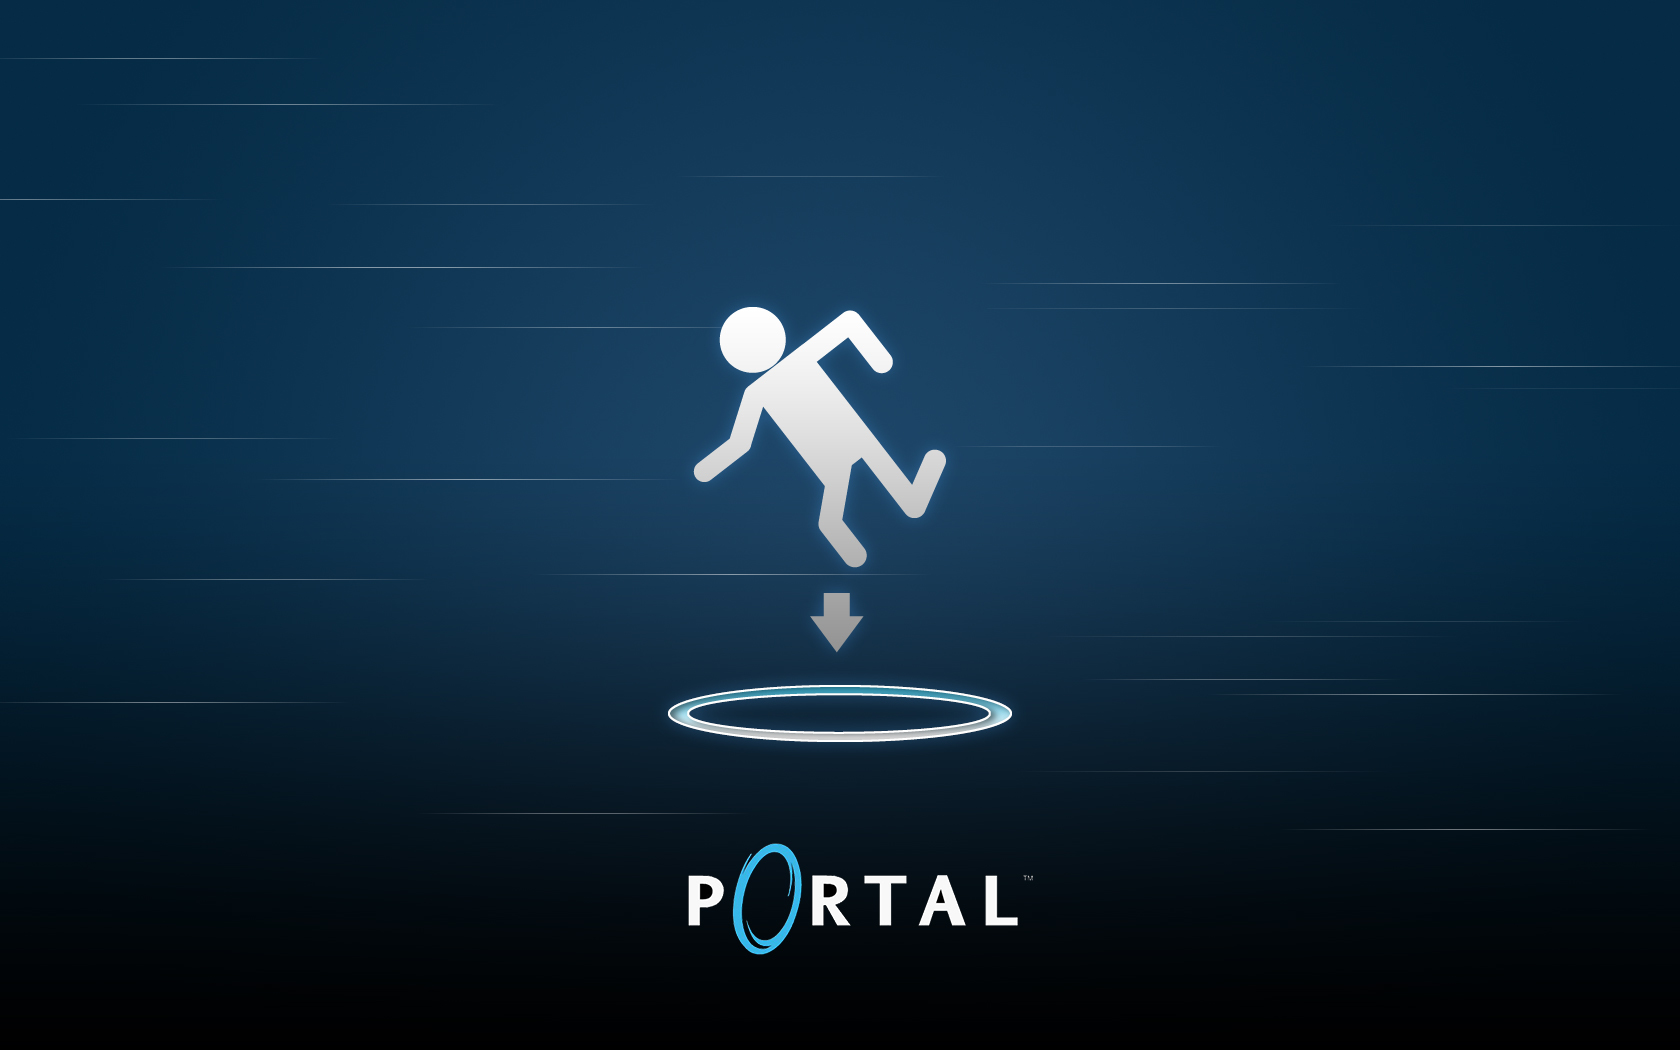 valve corporation Portal HD Wallpaper